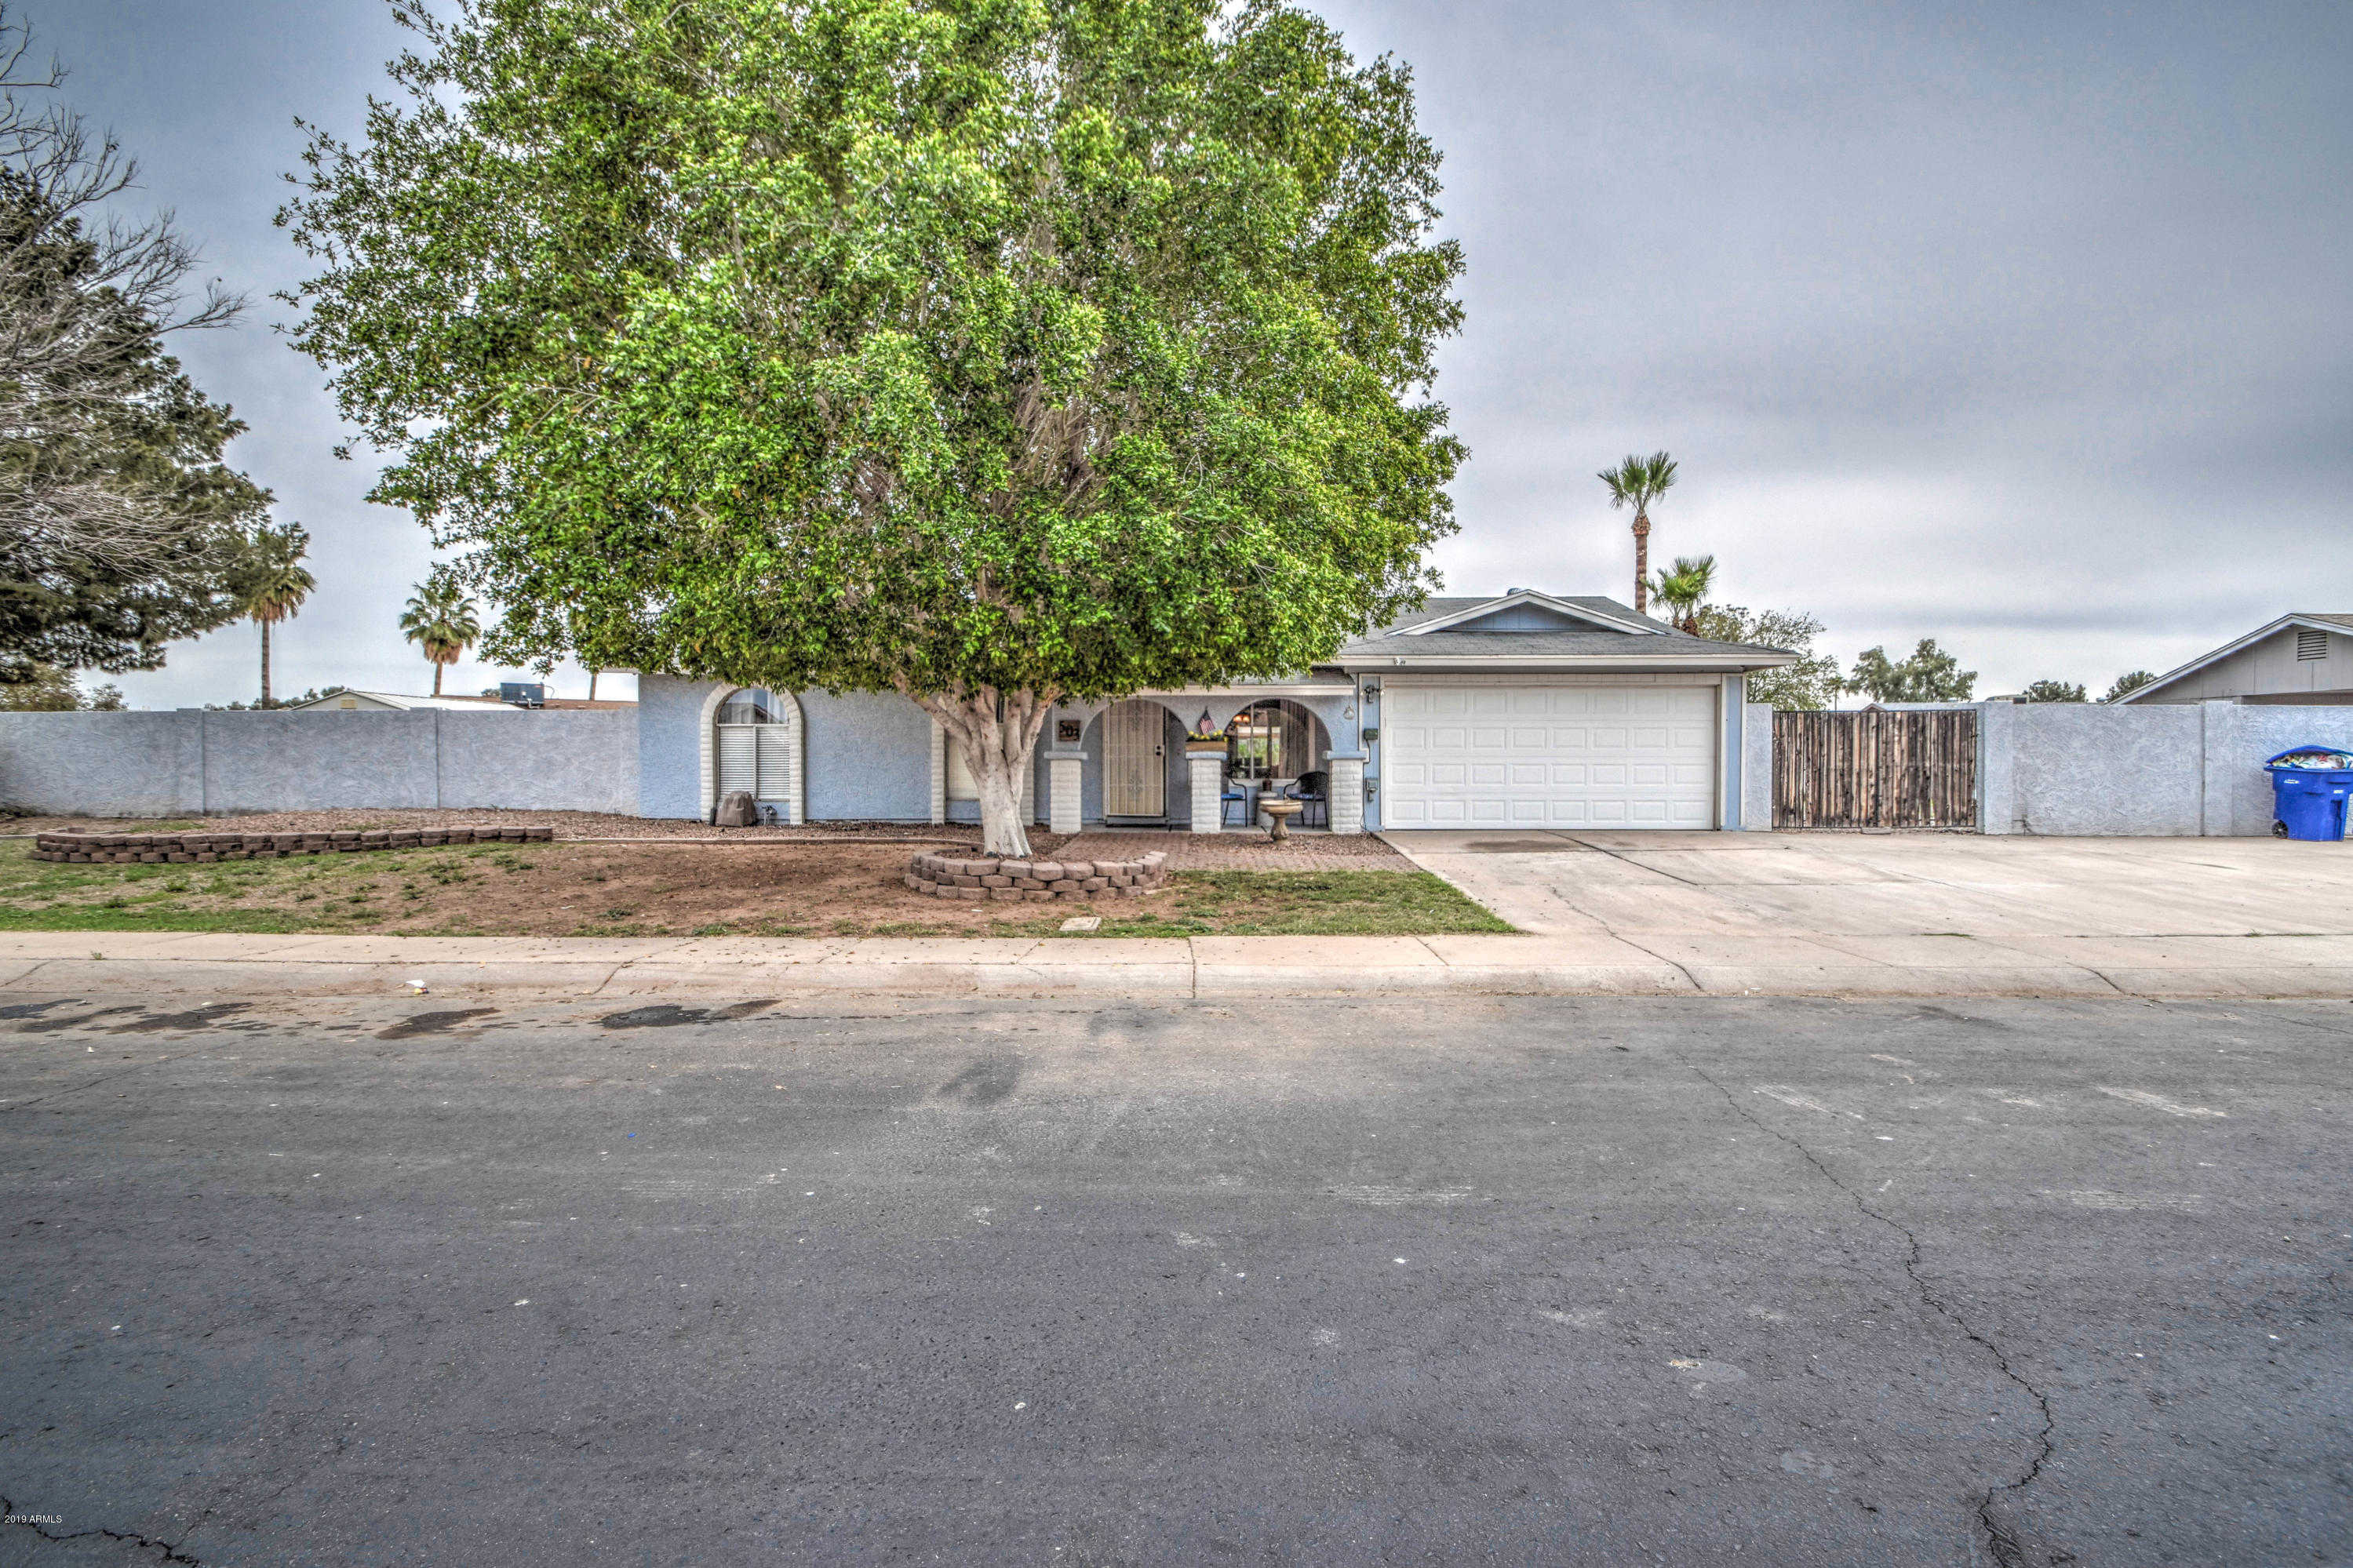 $300,000 - 4Br/2Ba - Home for Sale in Project 12 Associates Lot 1-176, Chandler